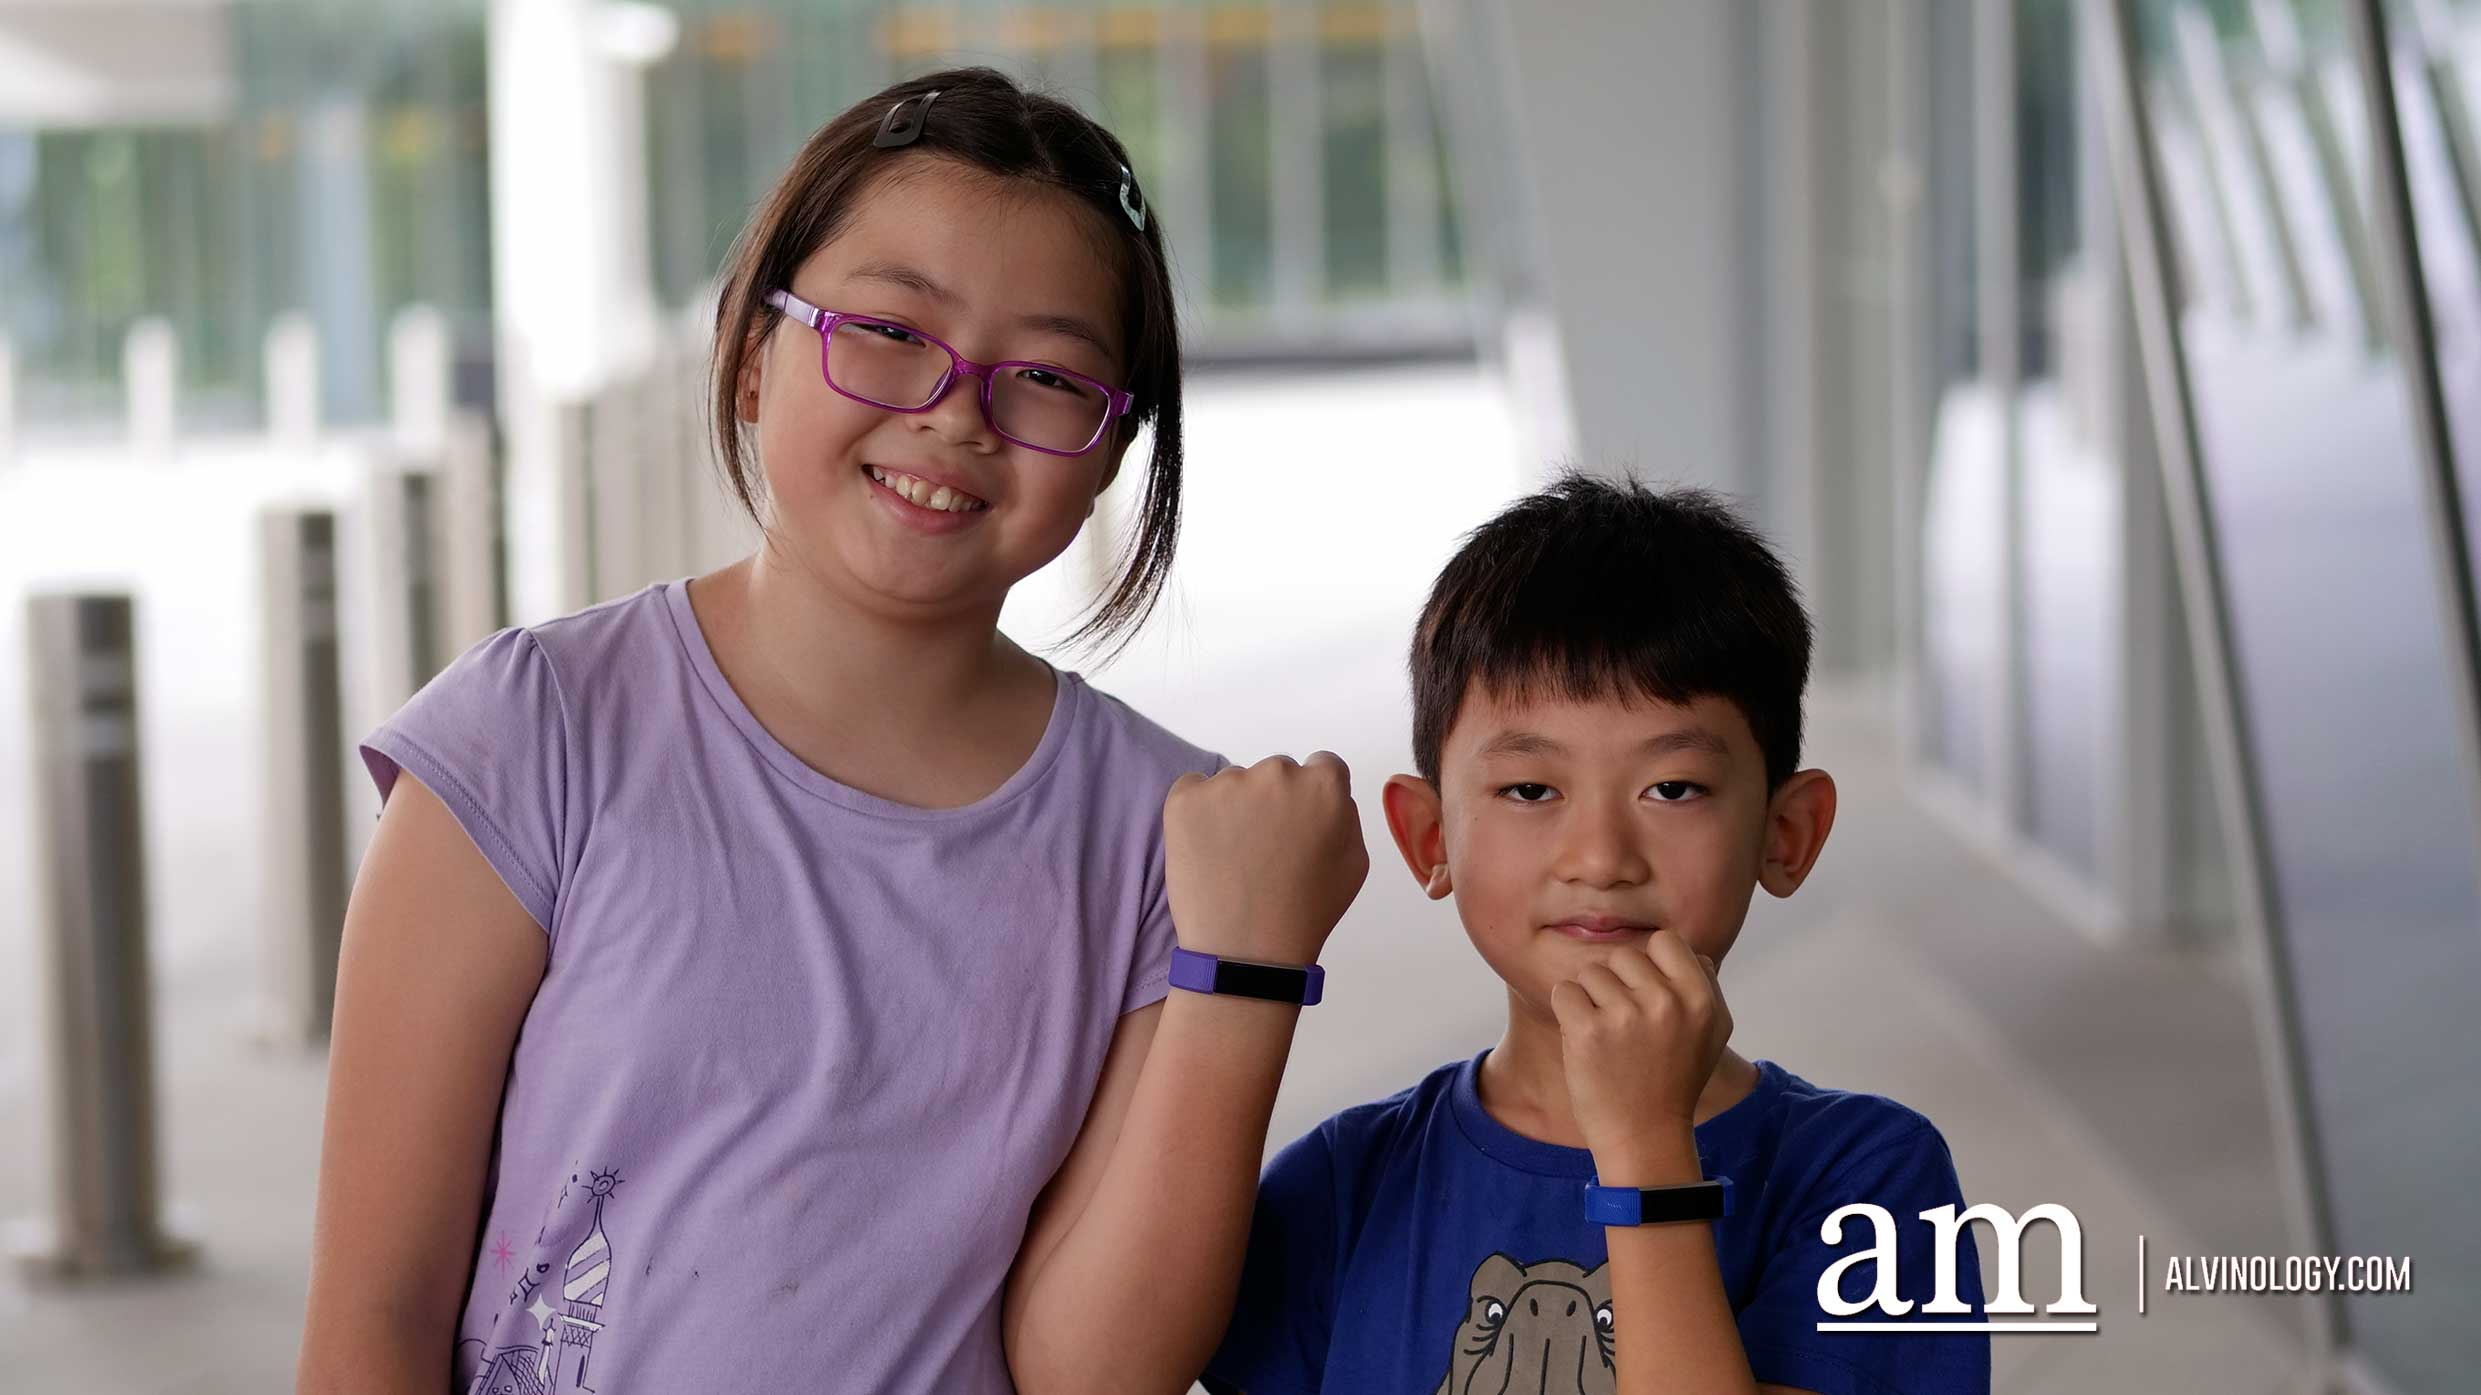 Fitness is now a Family Affair with the Fitbit Family Account - Alvinology